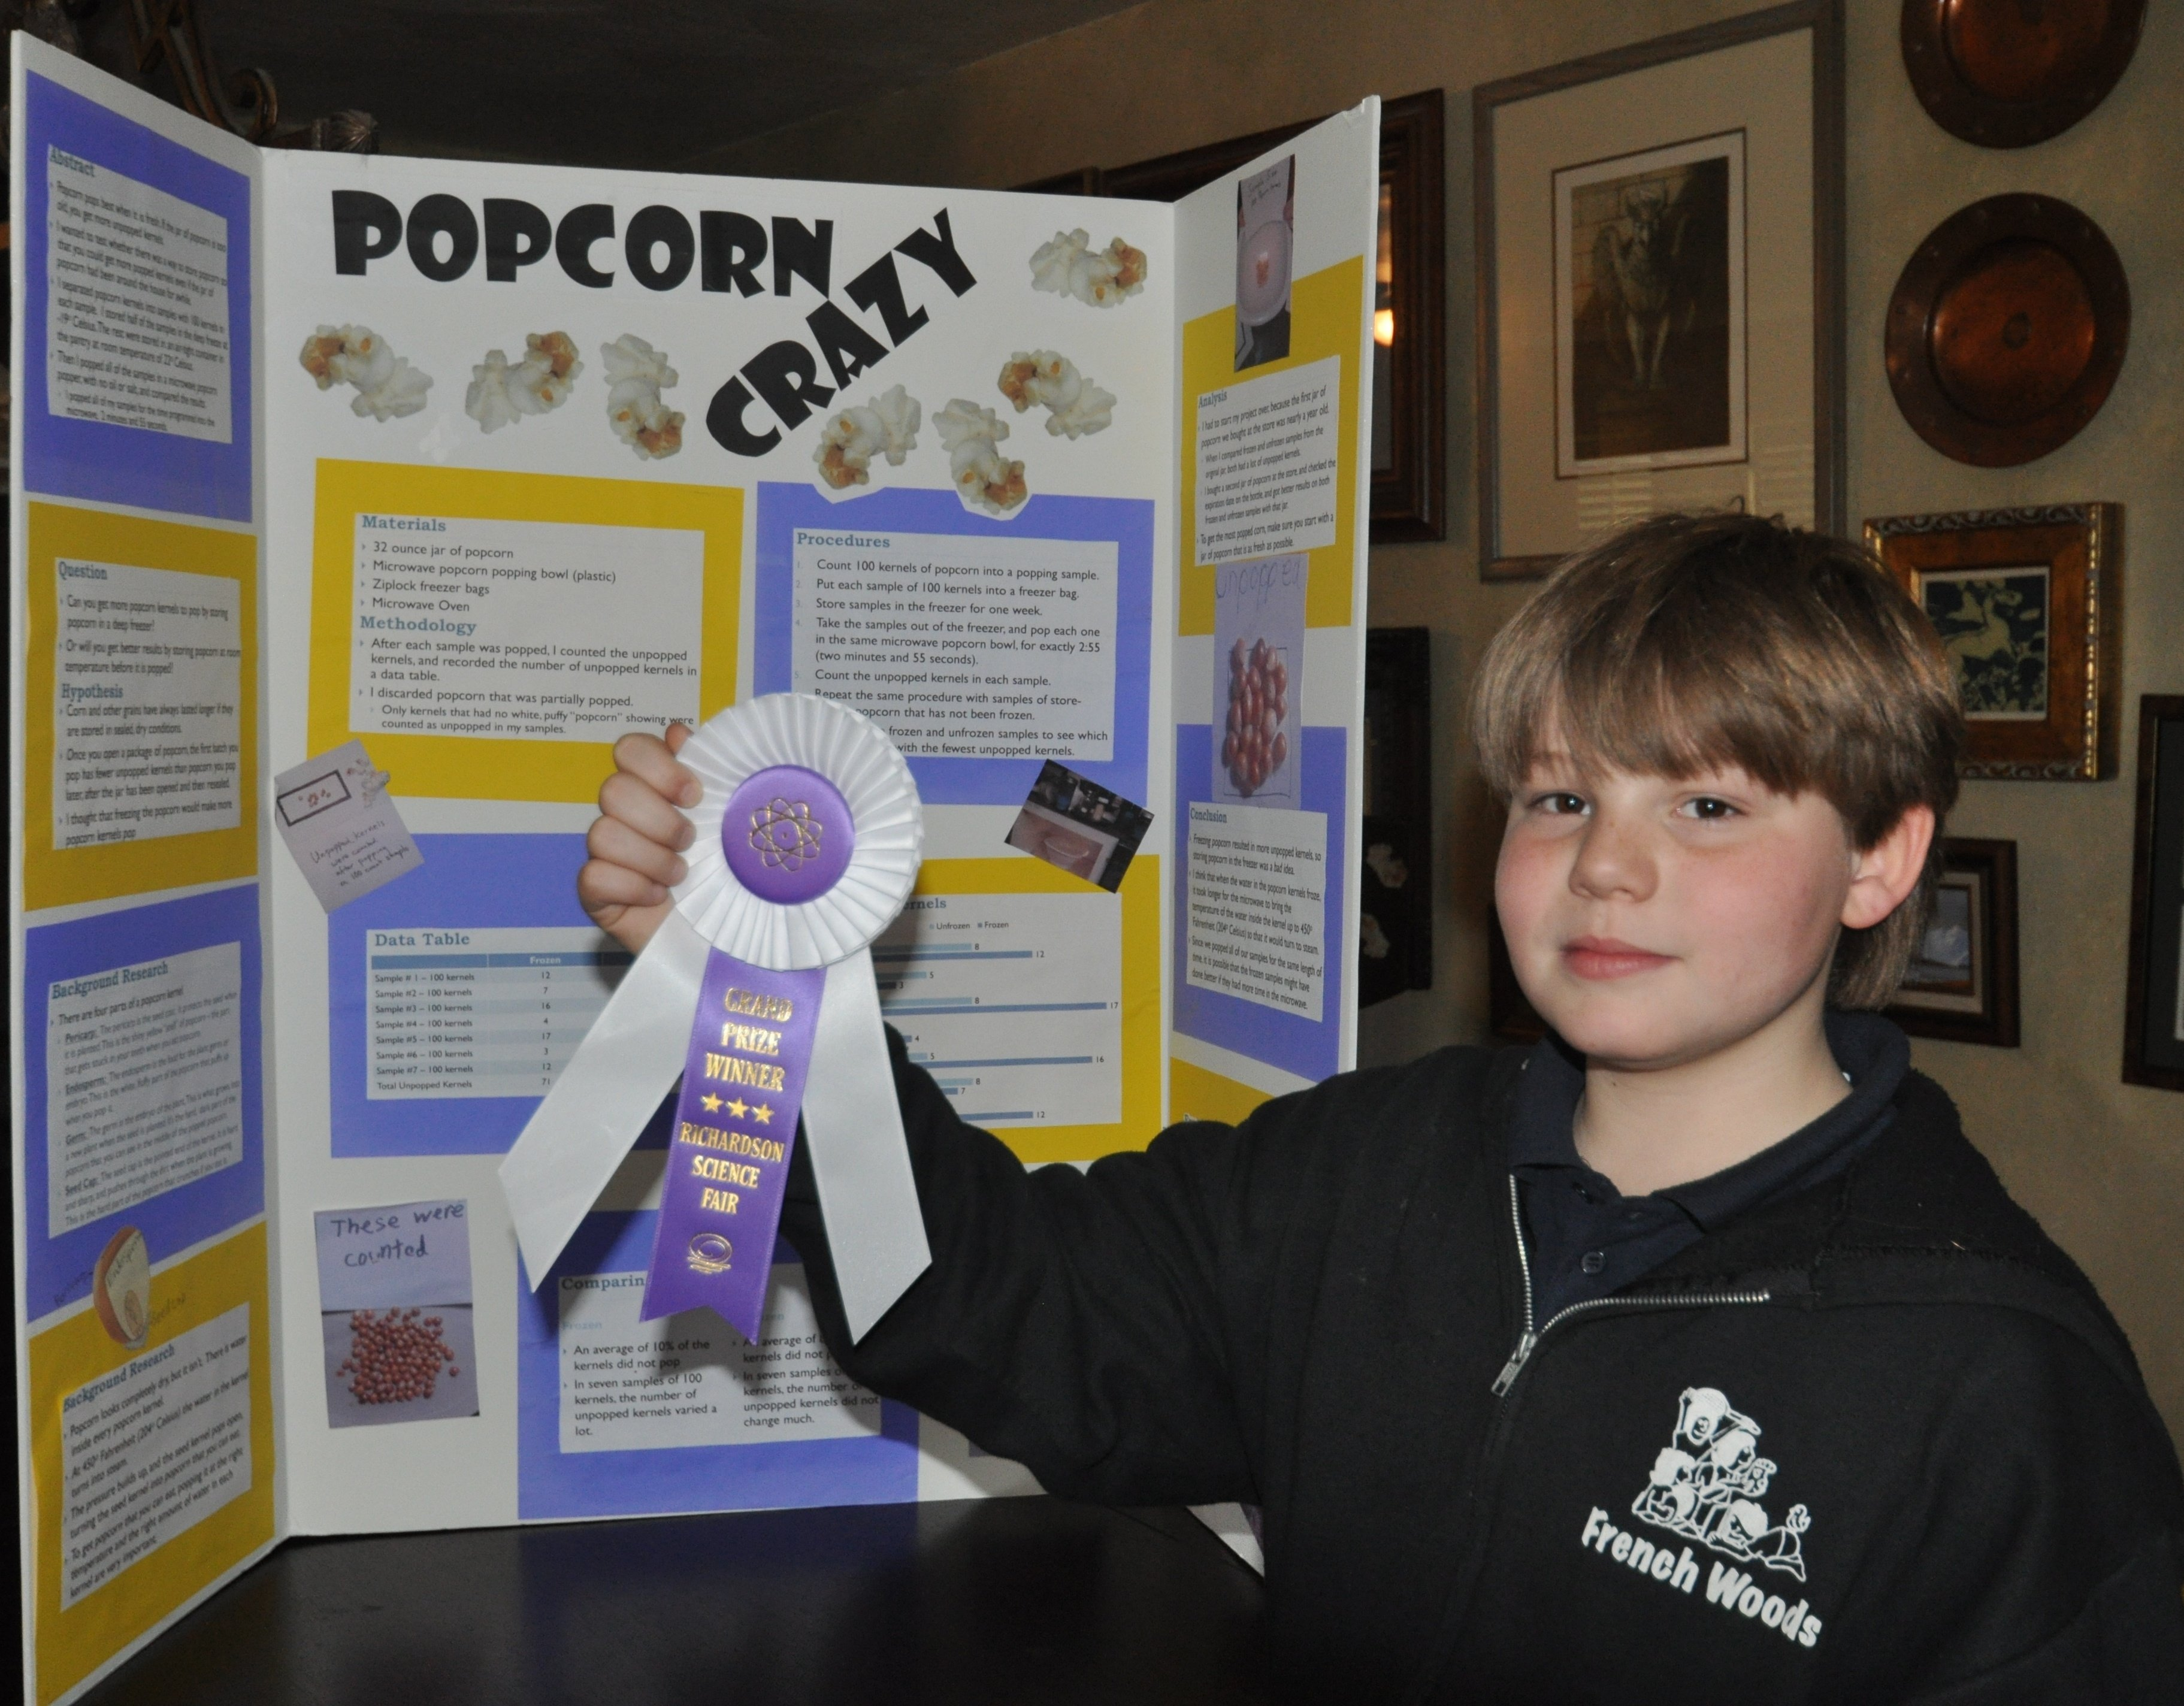 10 Cute Science Fair Project Ideas 5Th Grade how to help your kid win a science fair marketing where technology 21 2020